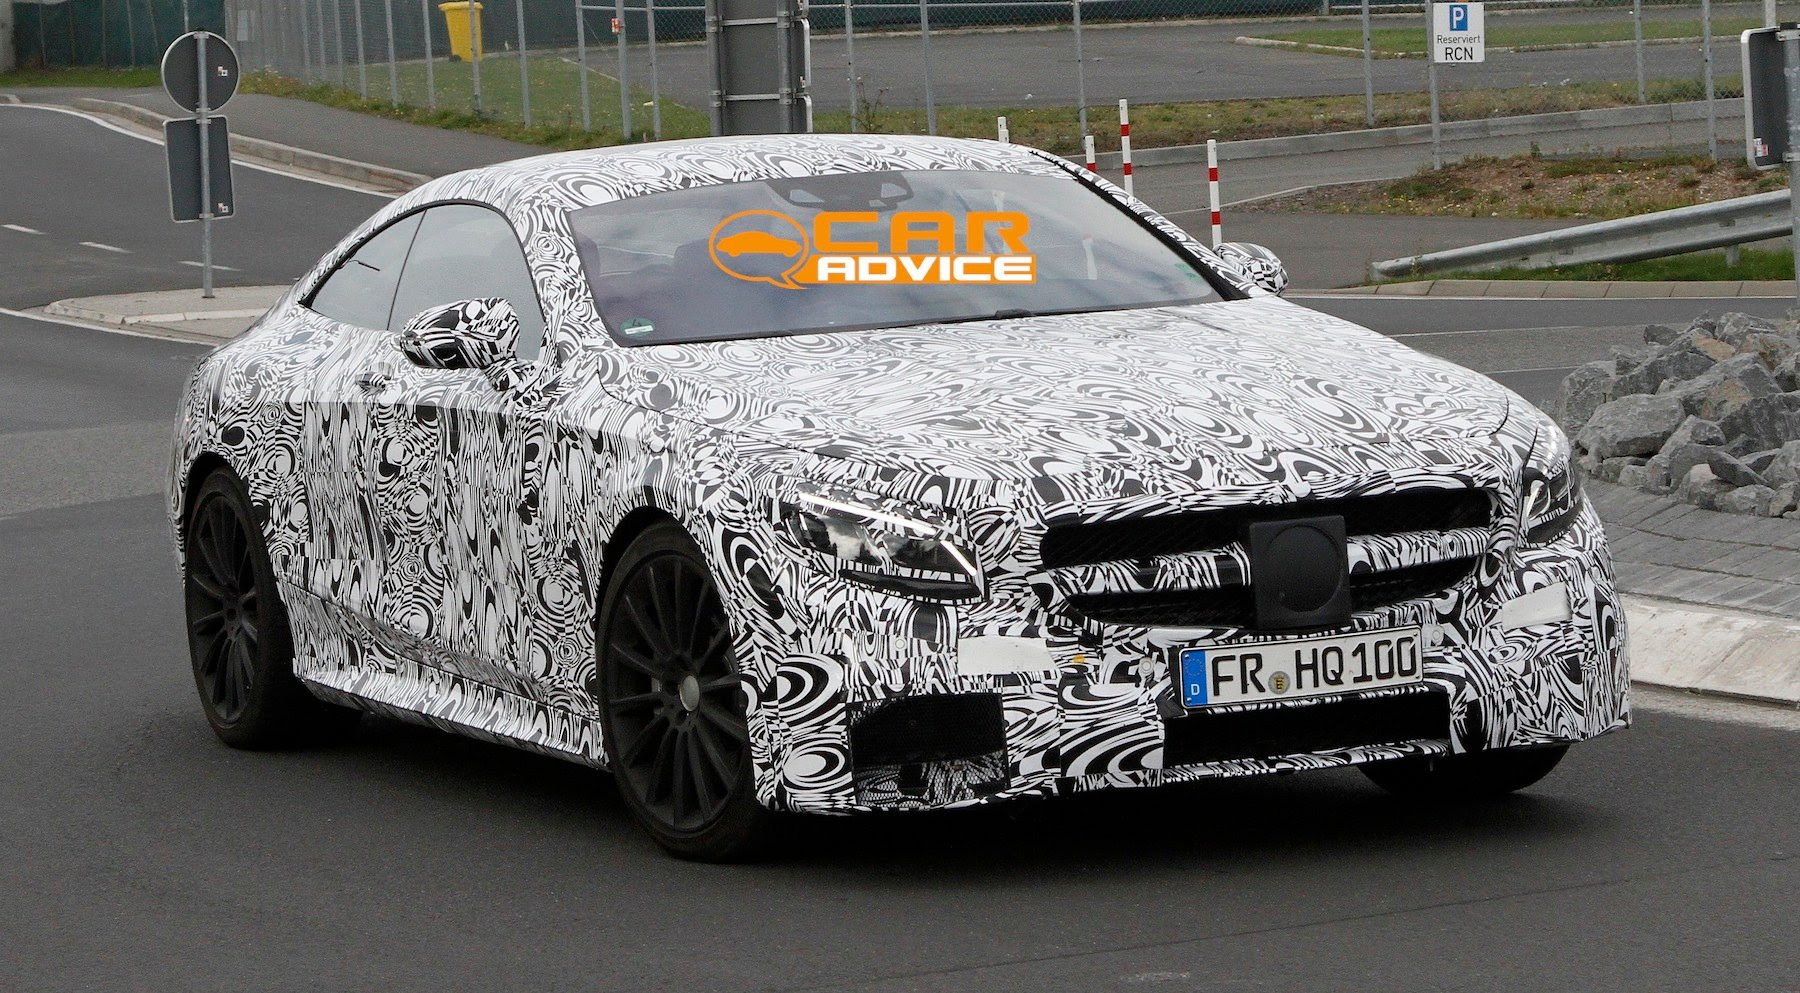 Mercedes-Benz S63 AMG Coupe spied in Germany - Photos (1 of 8)